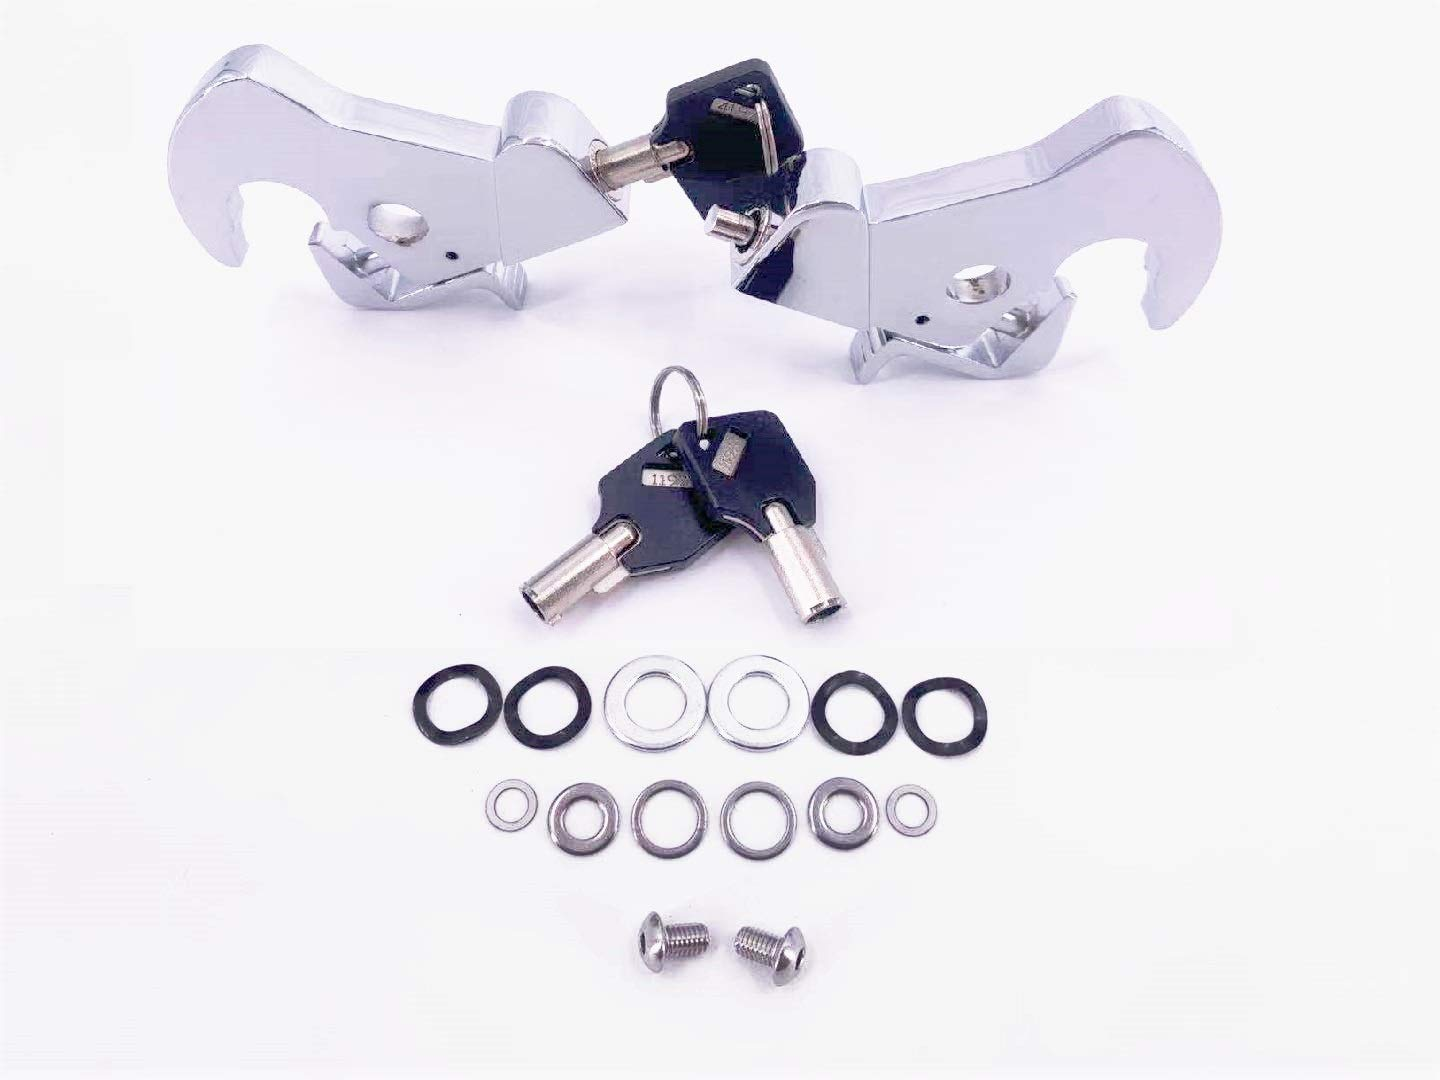 Locking Detachable Latch Kit Rotary Docking Latch Cam Lock Kit with Screw Caps for Harley Davidson HD Dyna Softail Sportster Touring Sissy Bar Luggage Rack Silver, 2 latches, 1 with keys